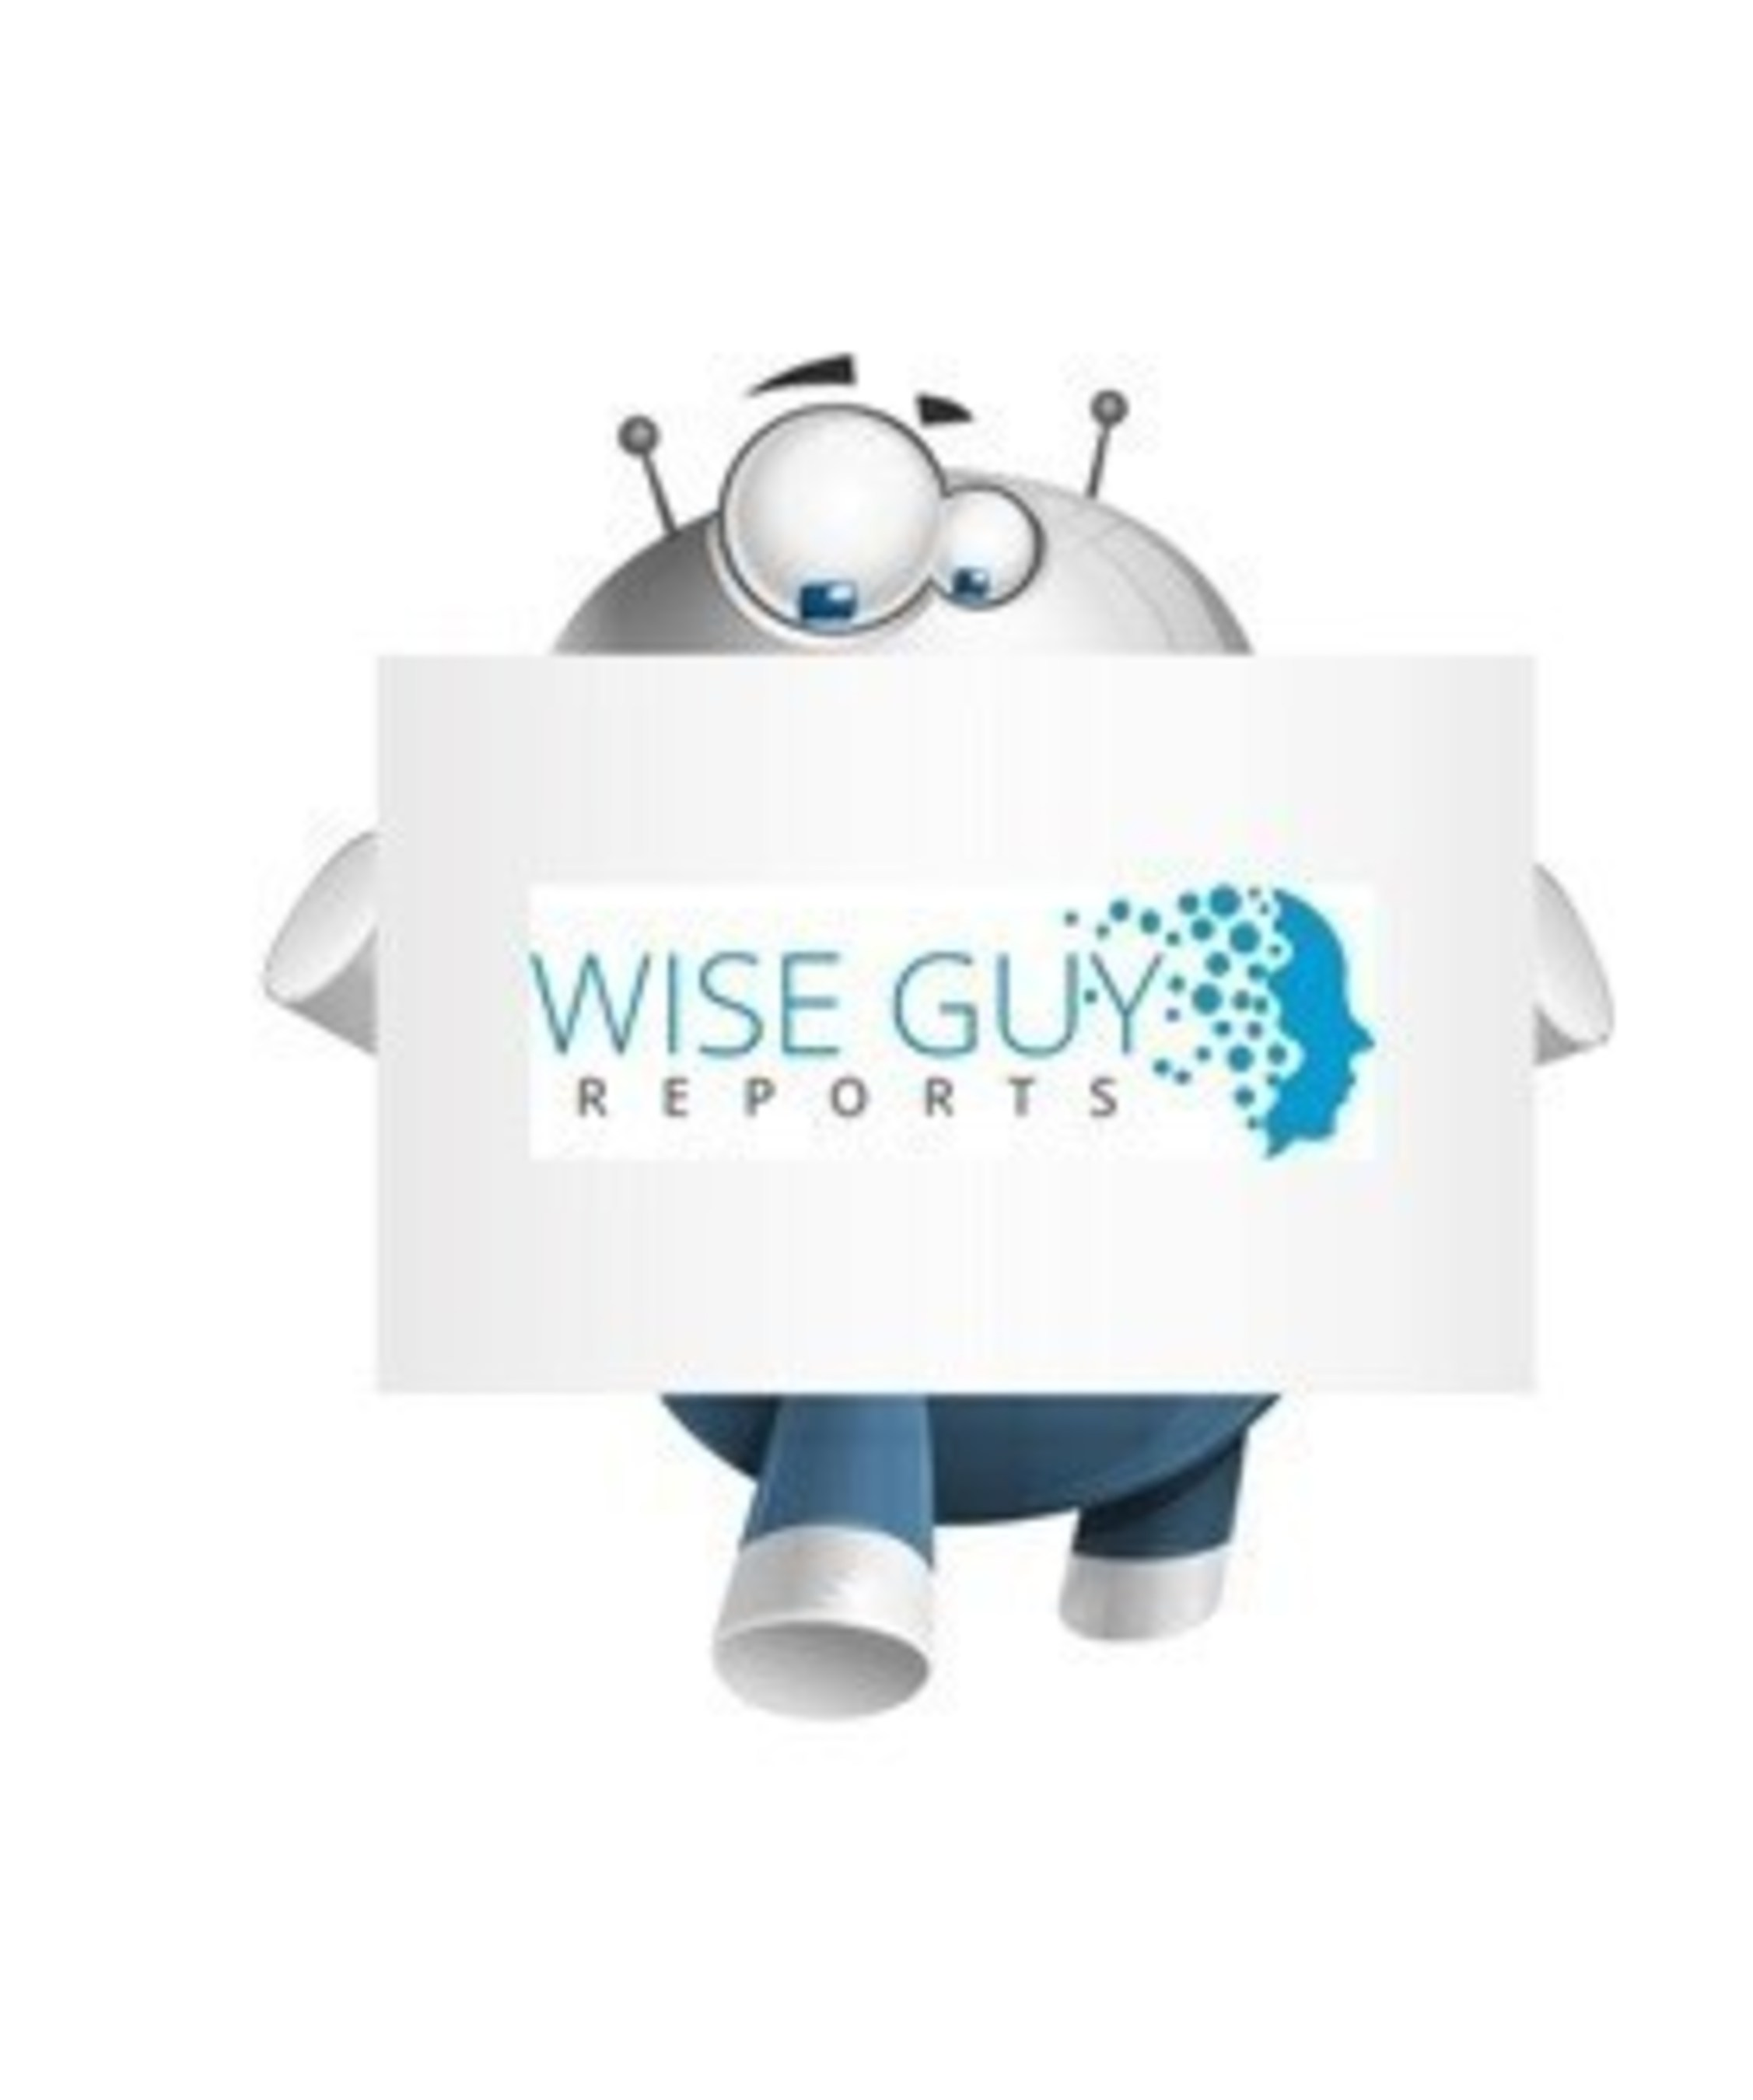 Global iPaaS Market (SaaS, PaaS, IaaS and BPaaS) to 2019 Research Report Available at WiseGuyReports.com